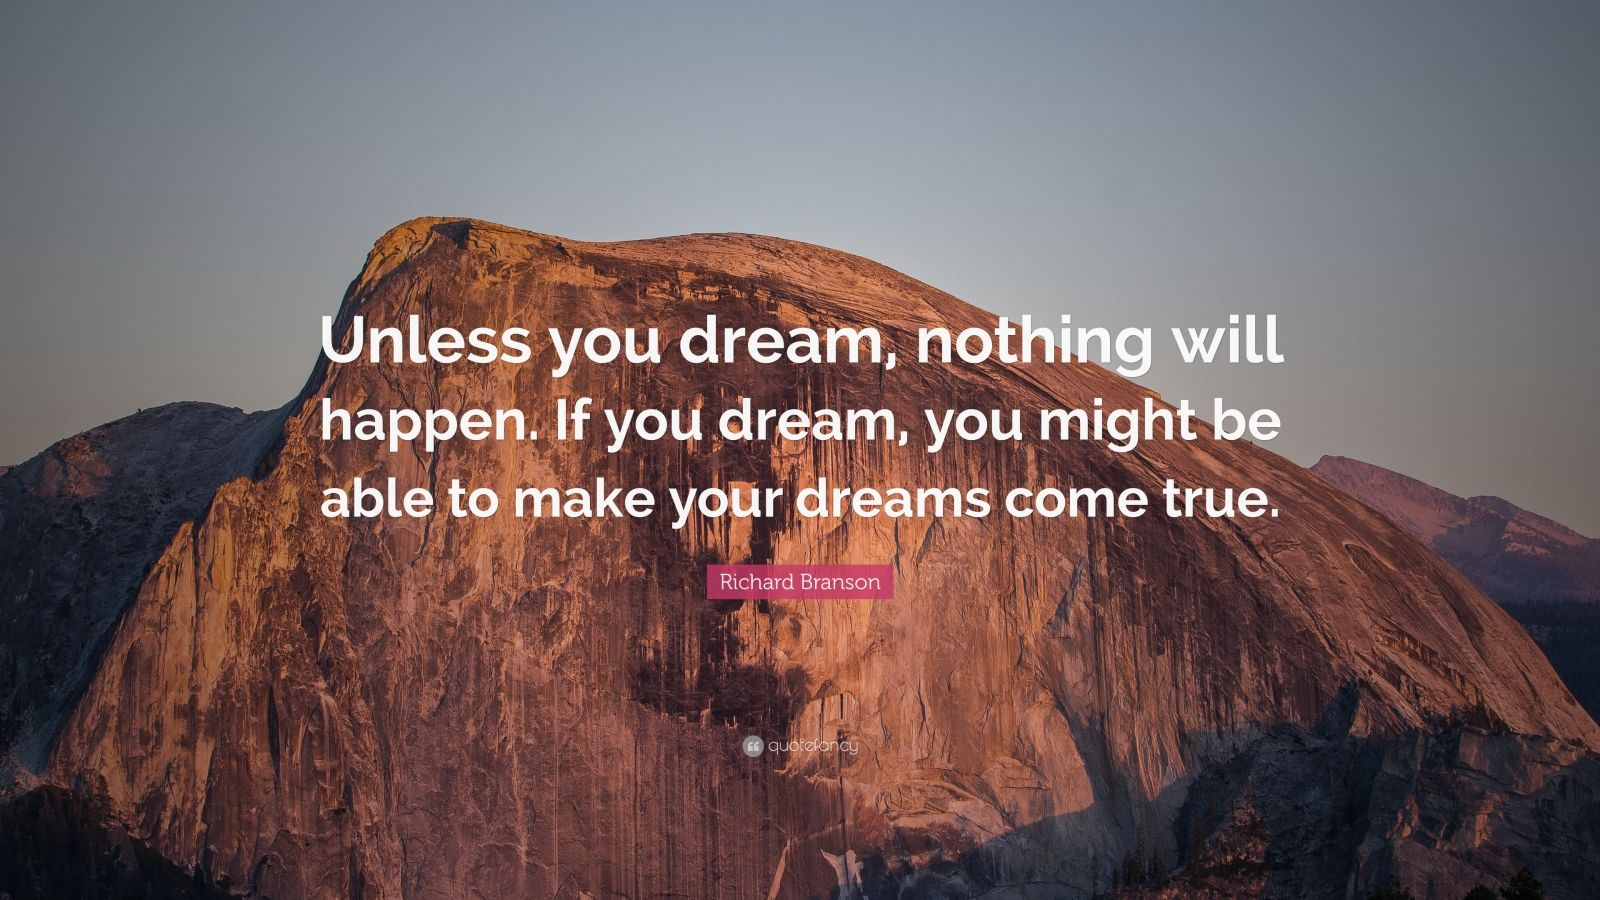 """Richard Branson Quote: """"Unless you dream, nothing will happen. If you dream, you might be able to make your dreams come true."""""""